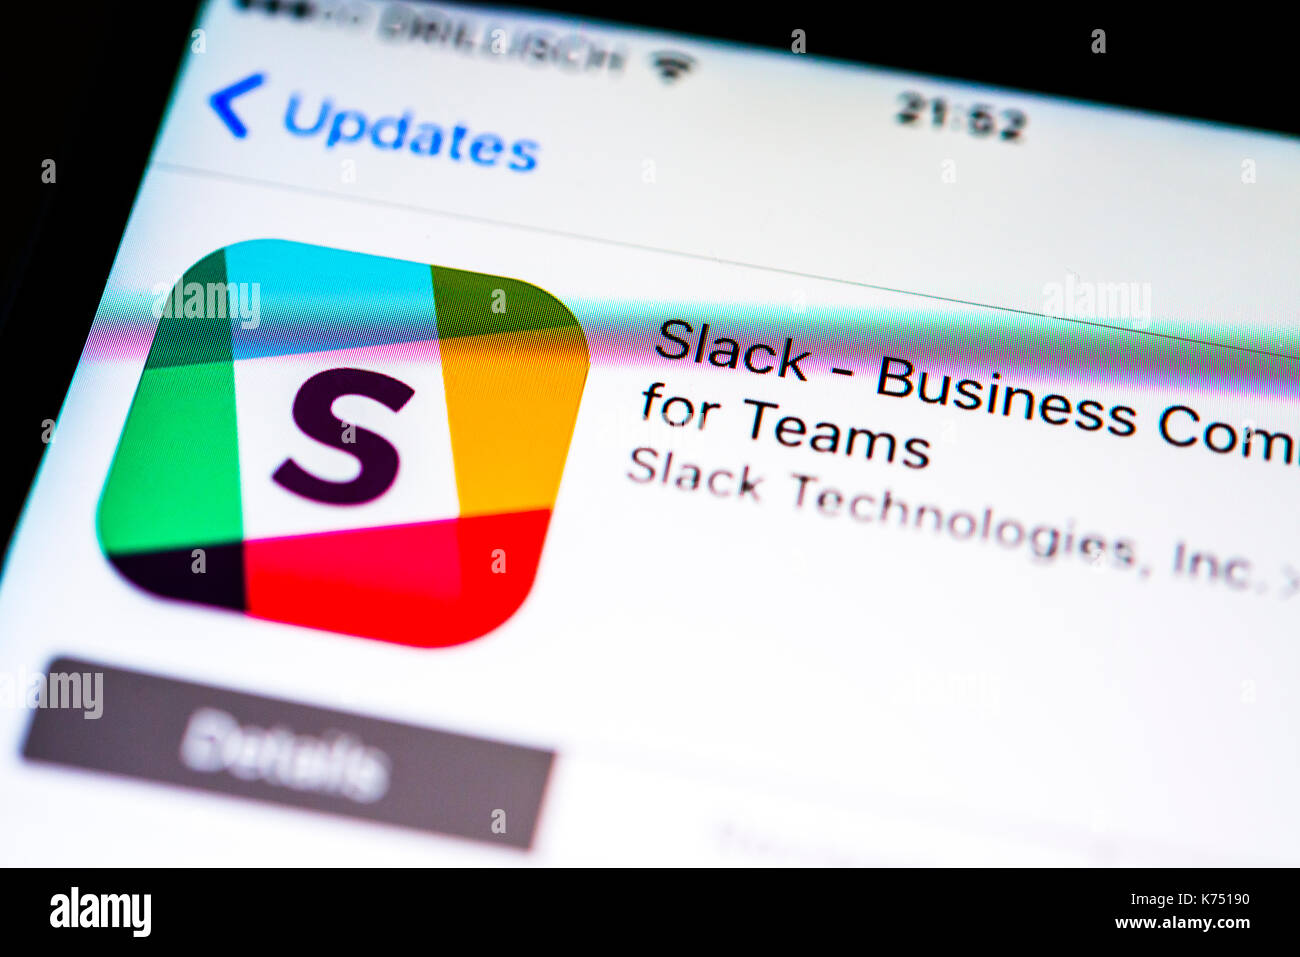 how to close slack app on mobile